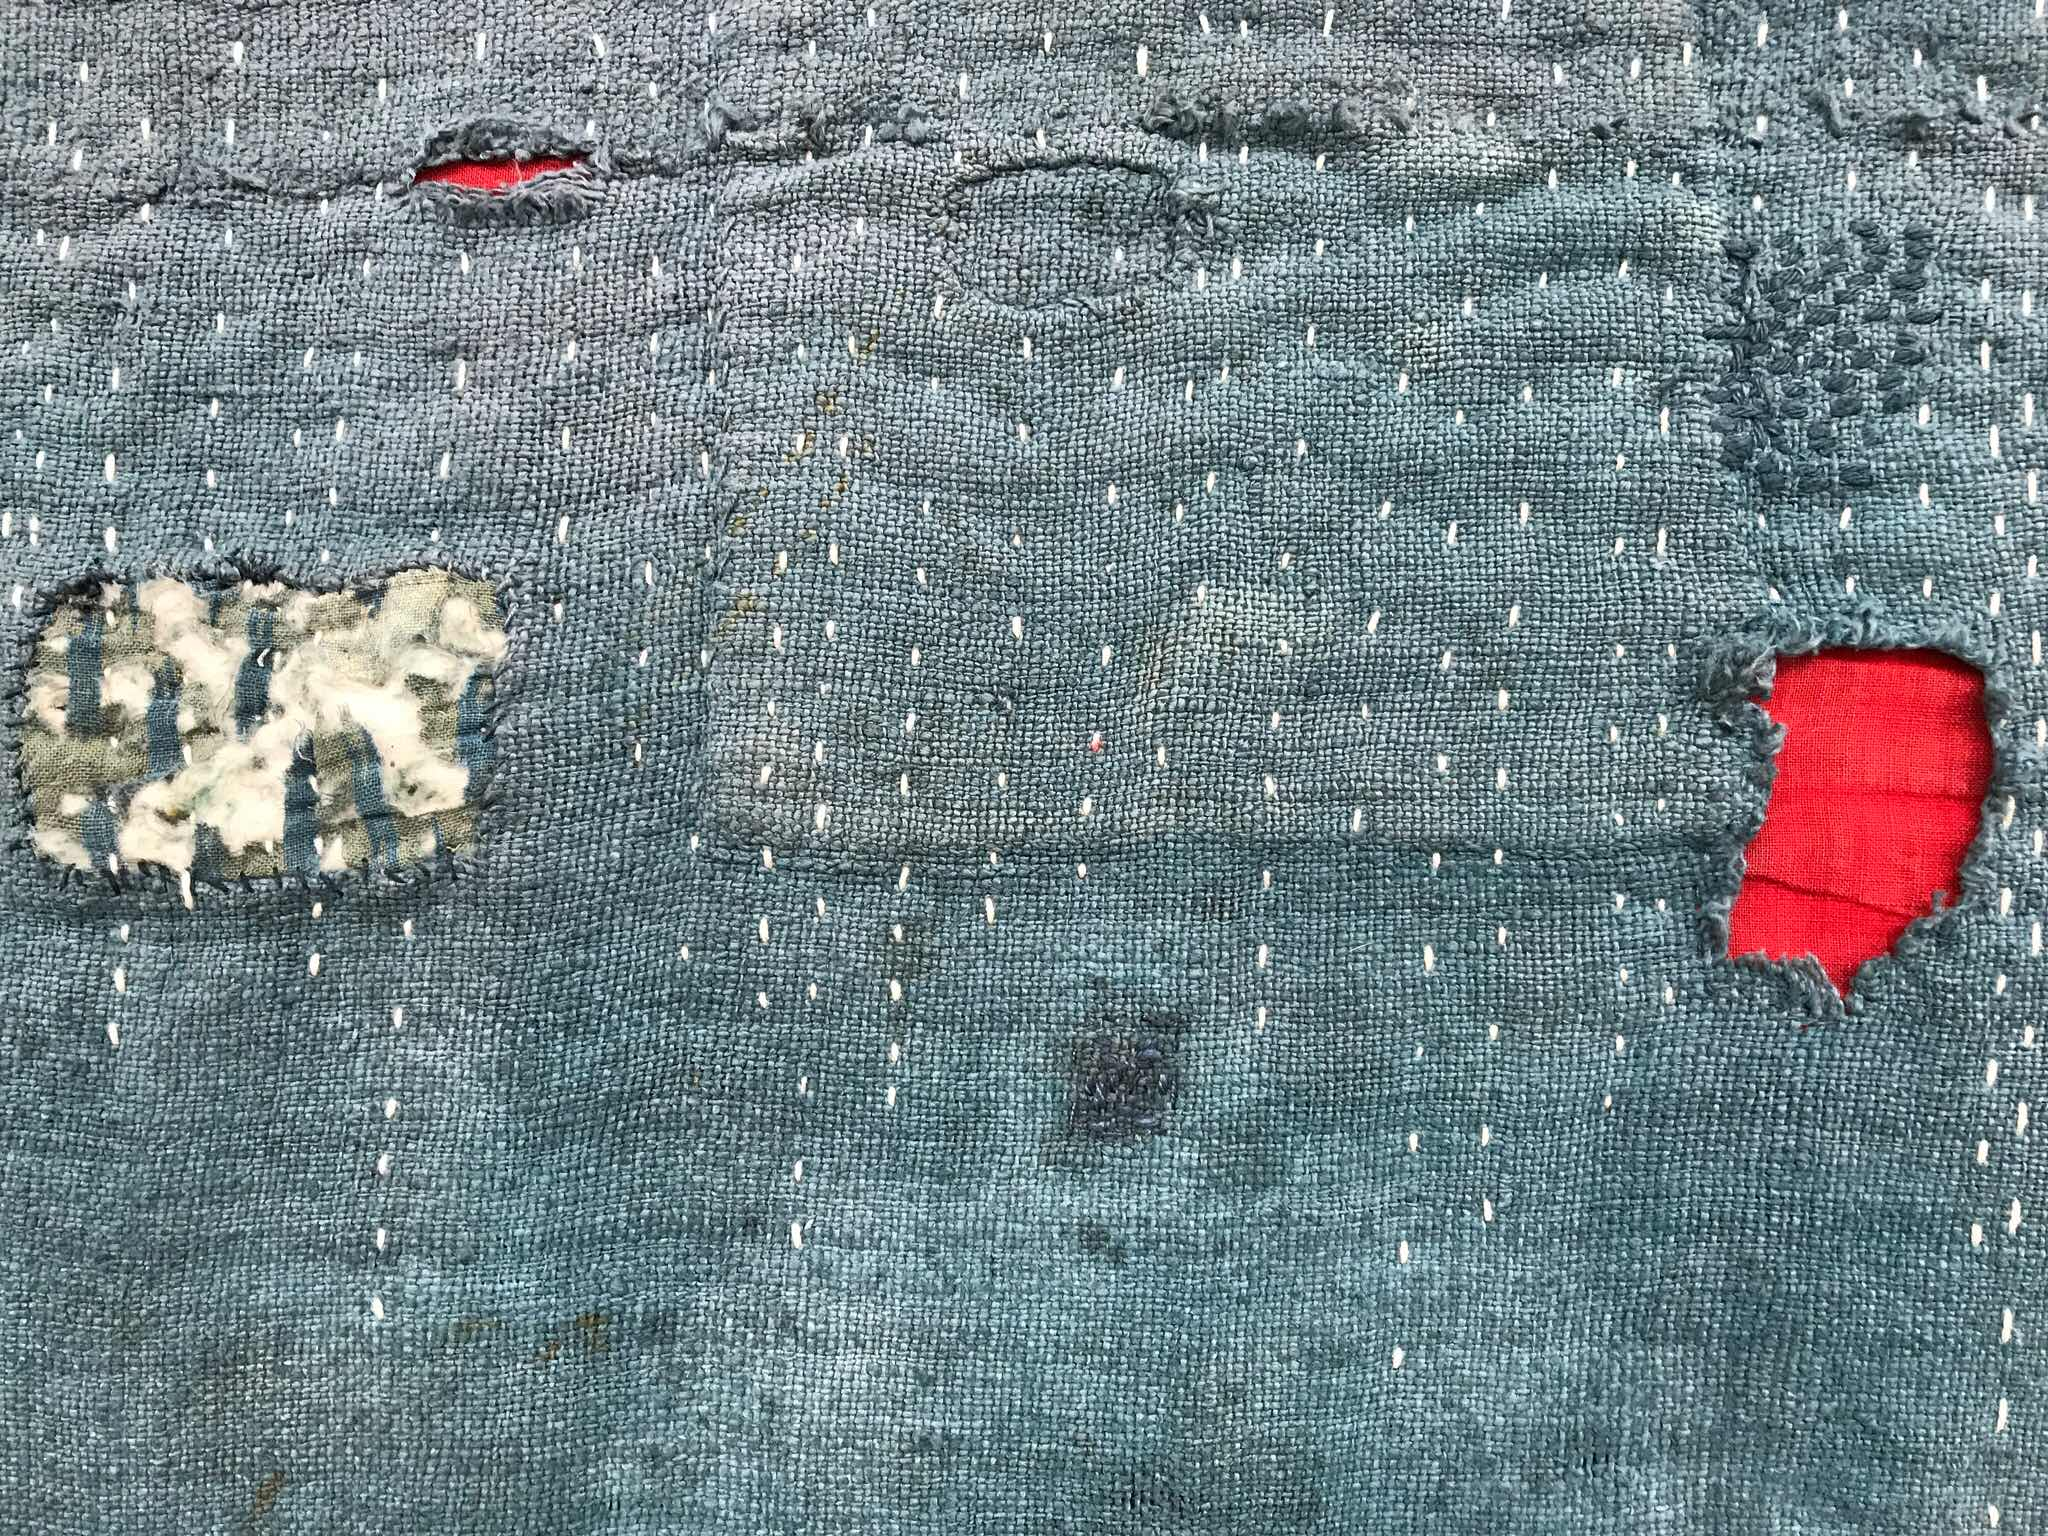 Detail of patches and stitching